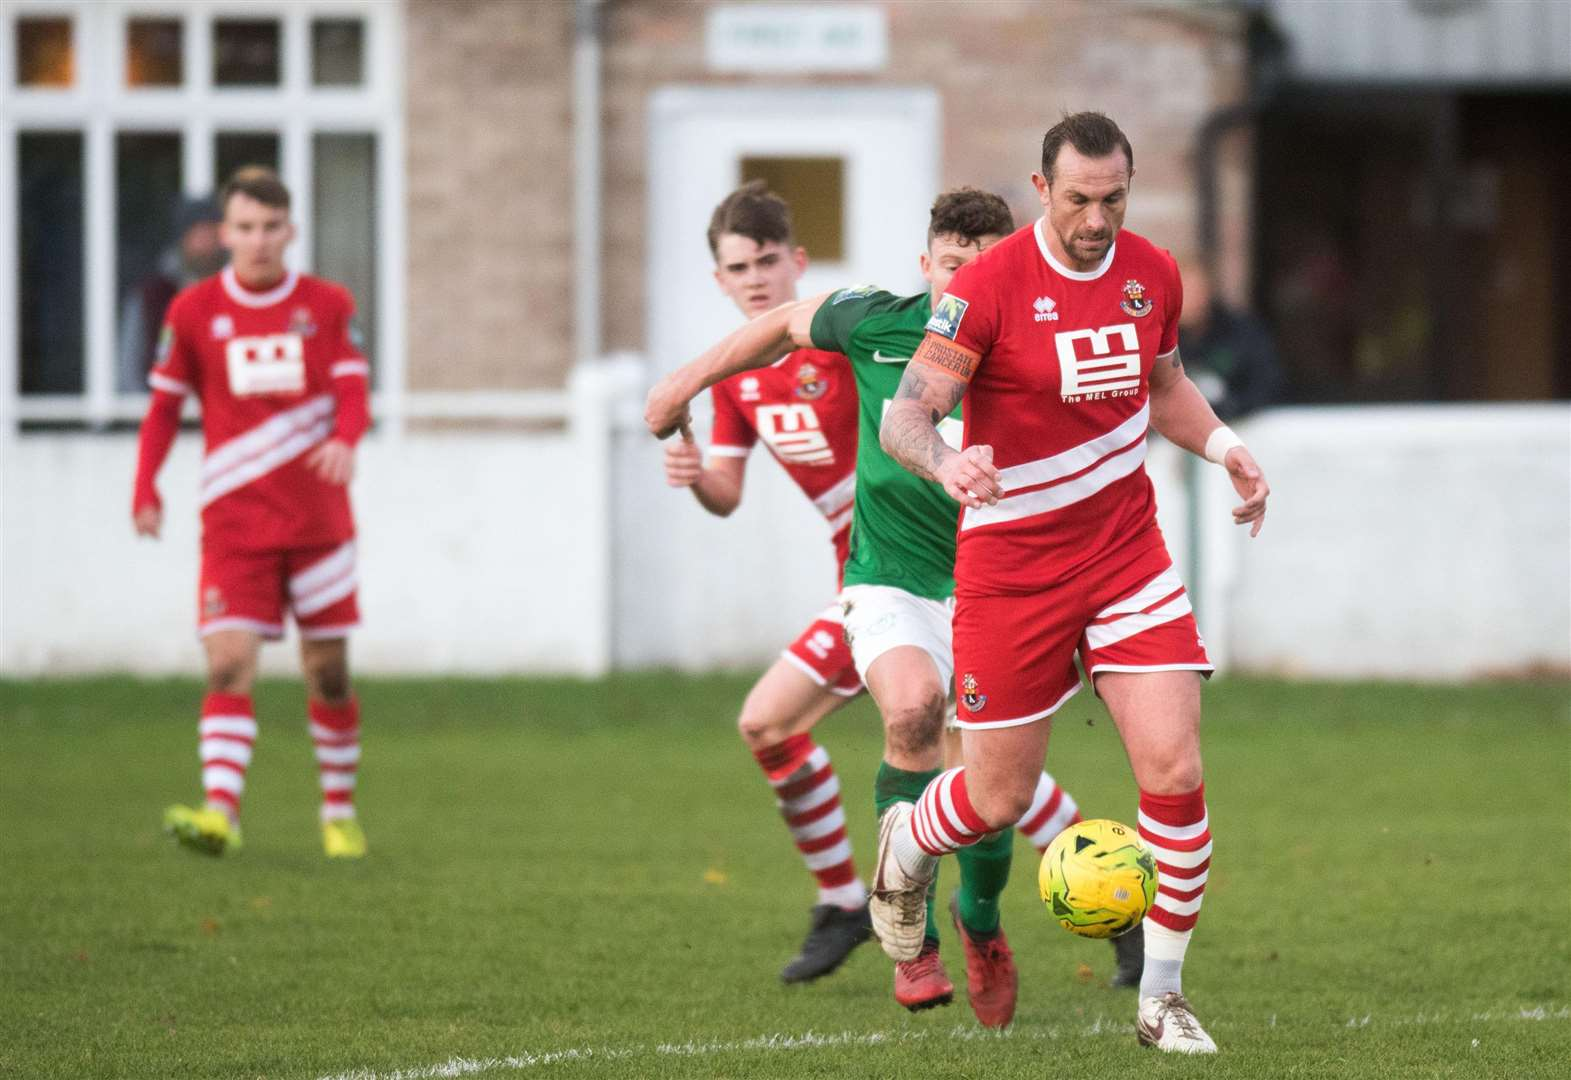 AFC return to winning ways